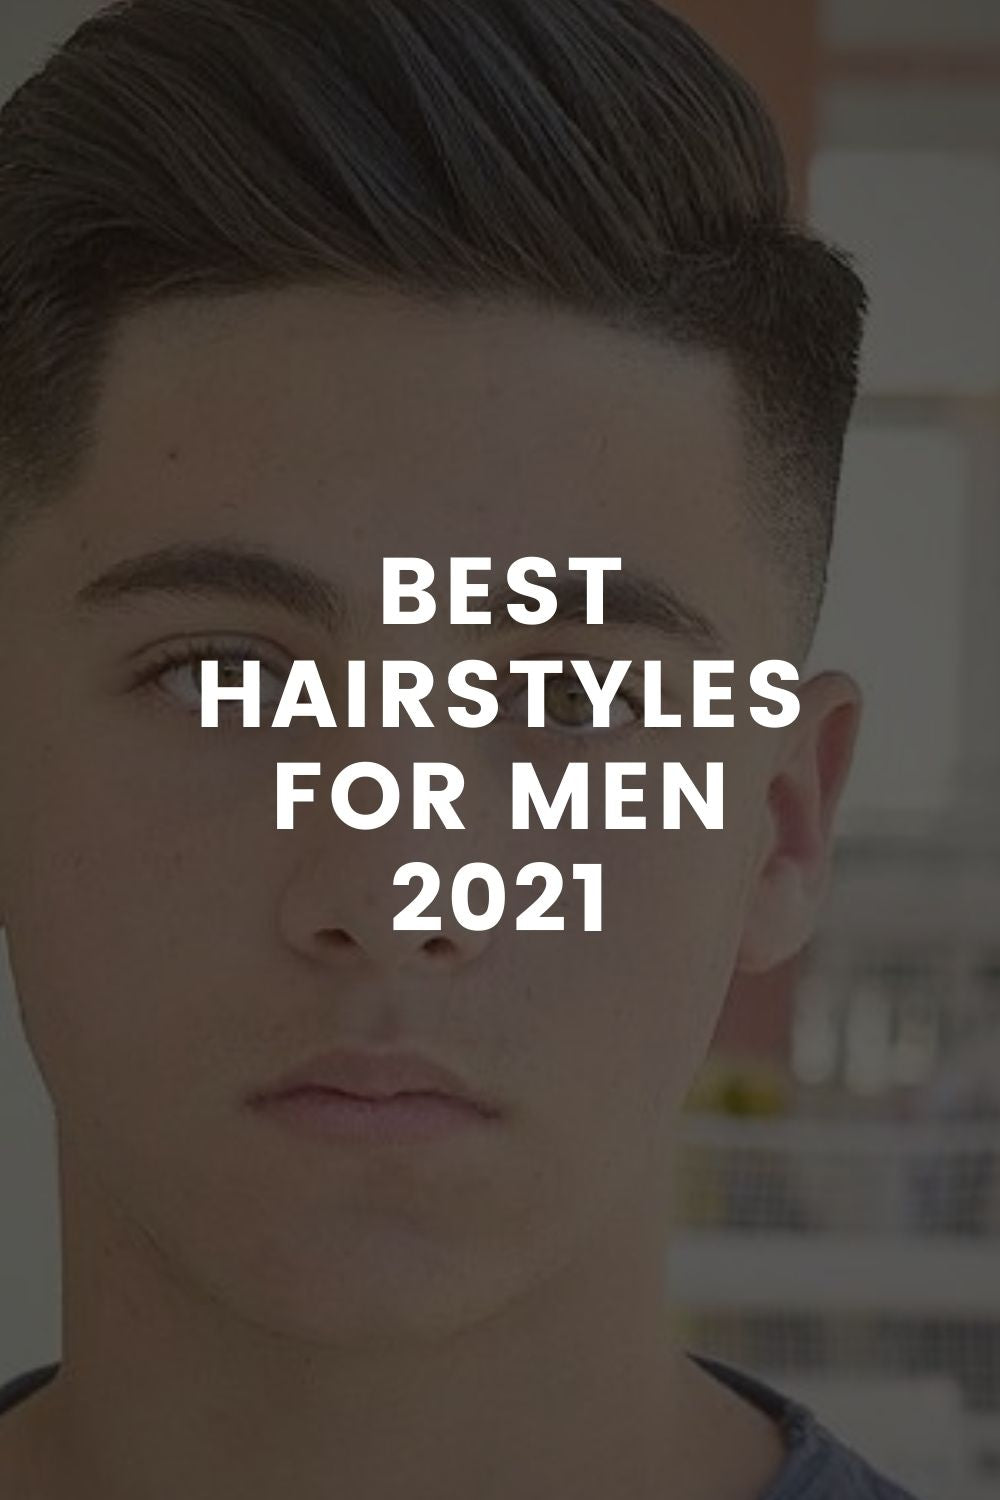 Best Hairstyles For Men 2021 | New Men's Haircuts 2021 ...